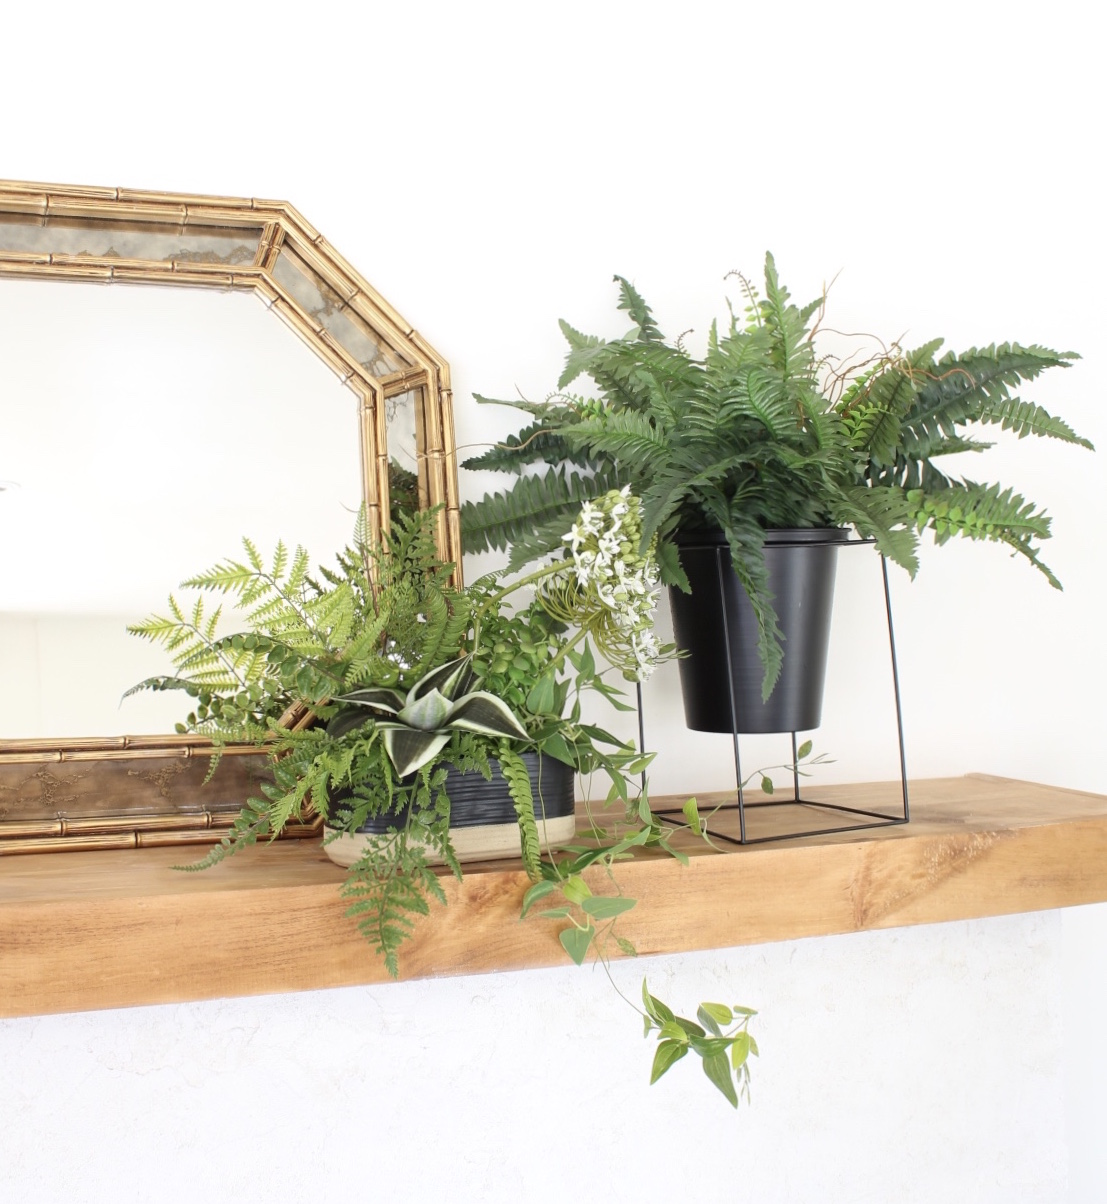 mothers-day-gift-ideas-faux-plants-harlow-thistle-1